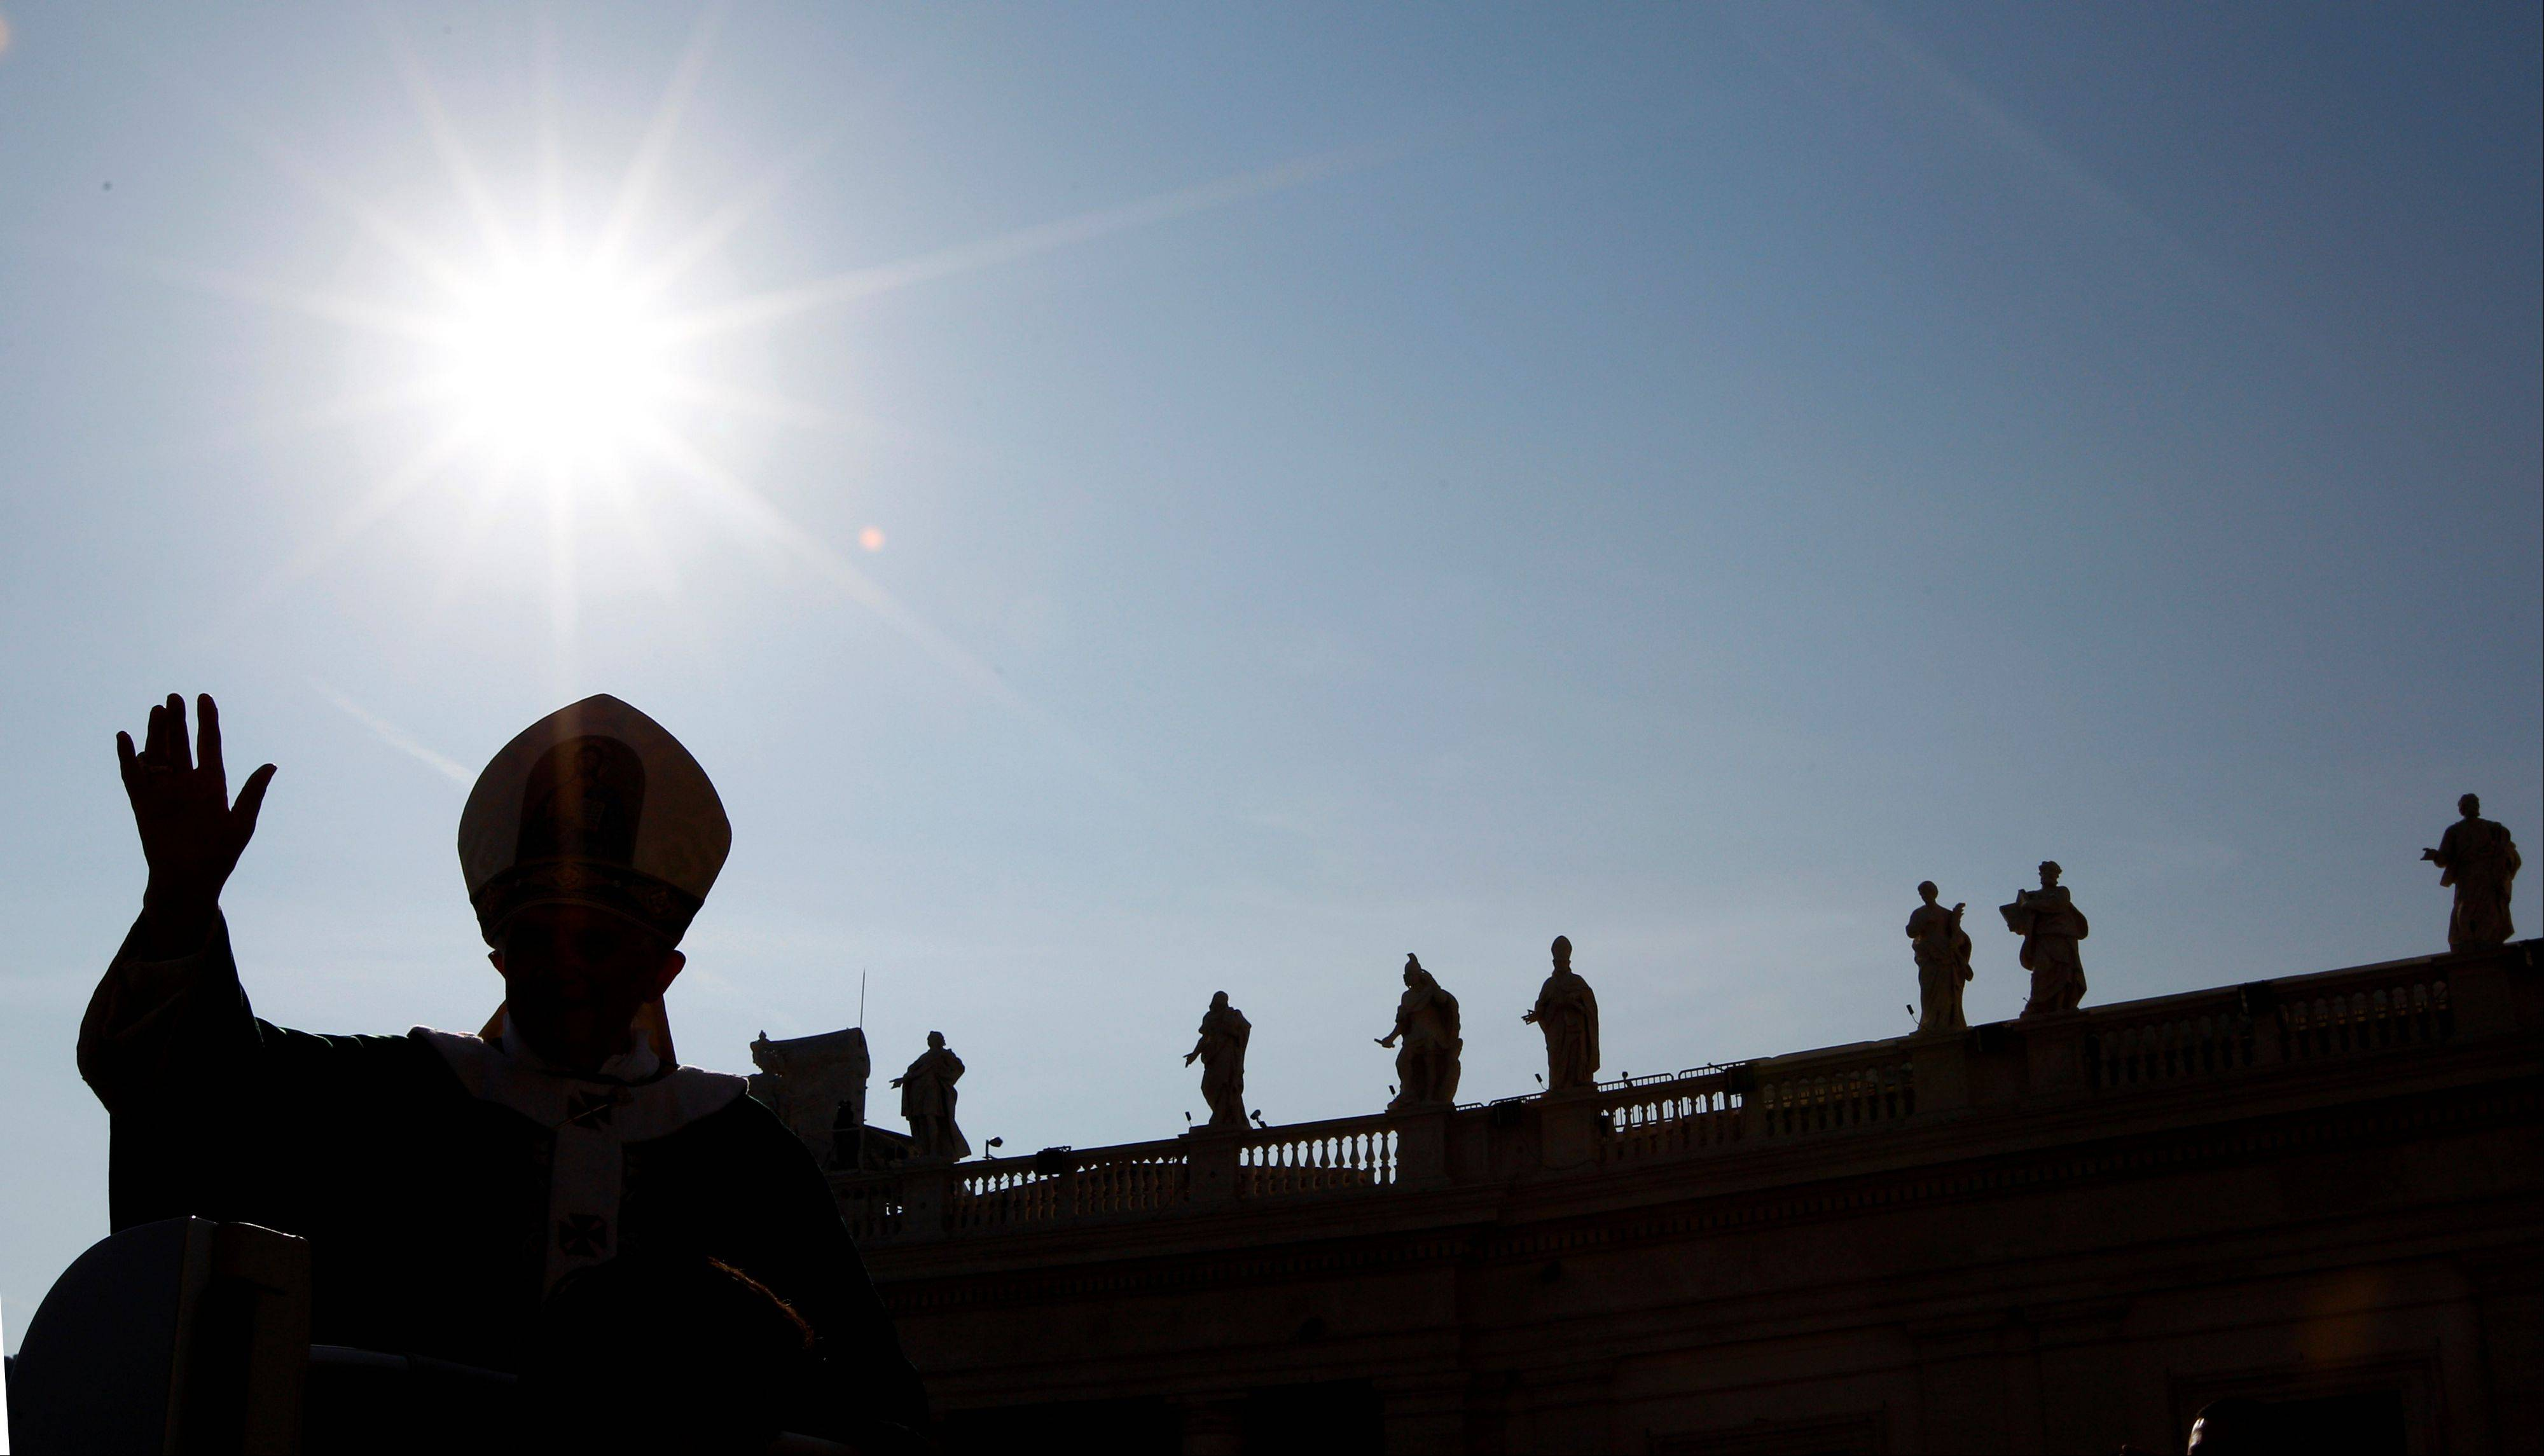 Pope Benedict XVI is silhouetted as he arrives to celebrate a mass marking the 50th anniversary of the Second Vatican Council, in St. Peter's square at the Vatican, Thursday, Oct. 11, 2012.